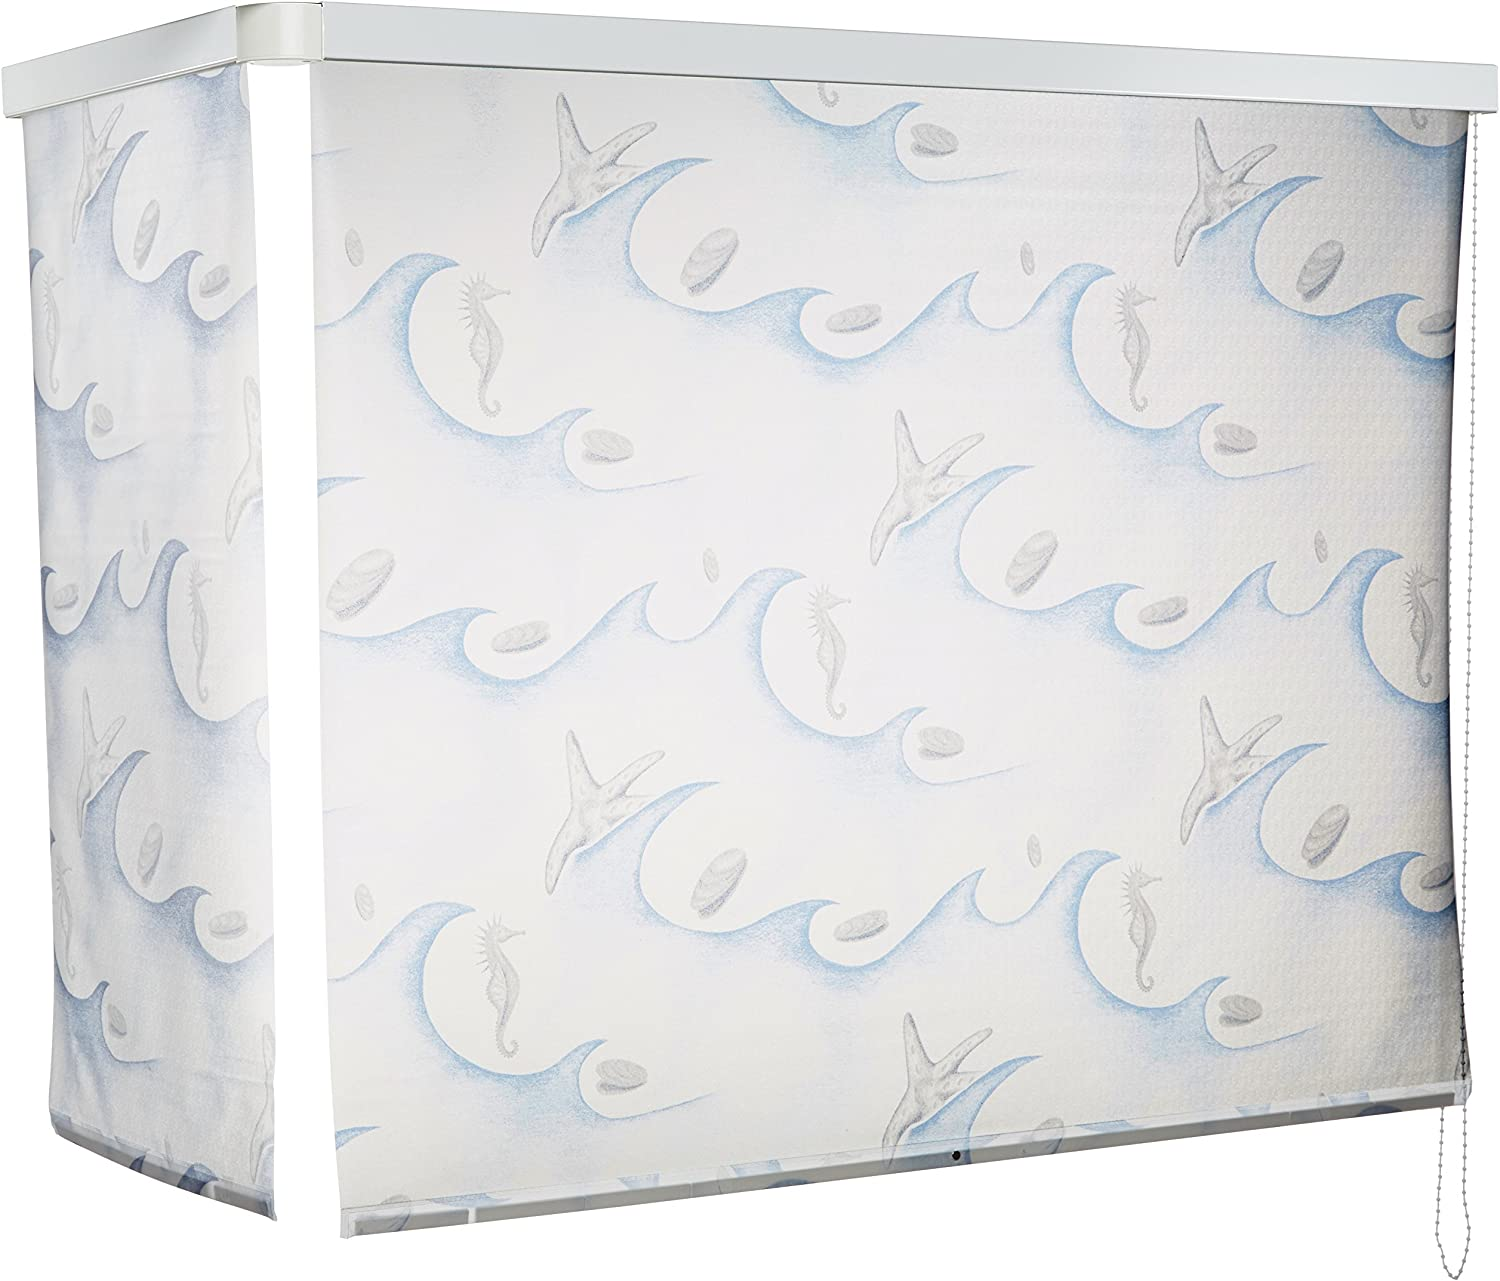 ECO-DuR 4024879002374 - Cortina de Ducha Enrollable (Angular, 137 x 62 cm), diseño oceánico, Color Blanco y Azul: Amazon.es: Hogar